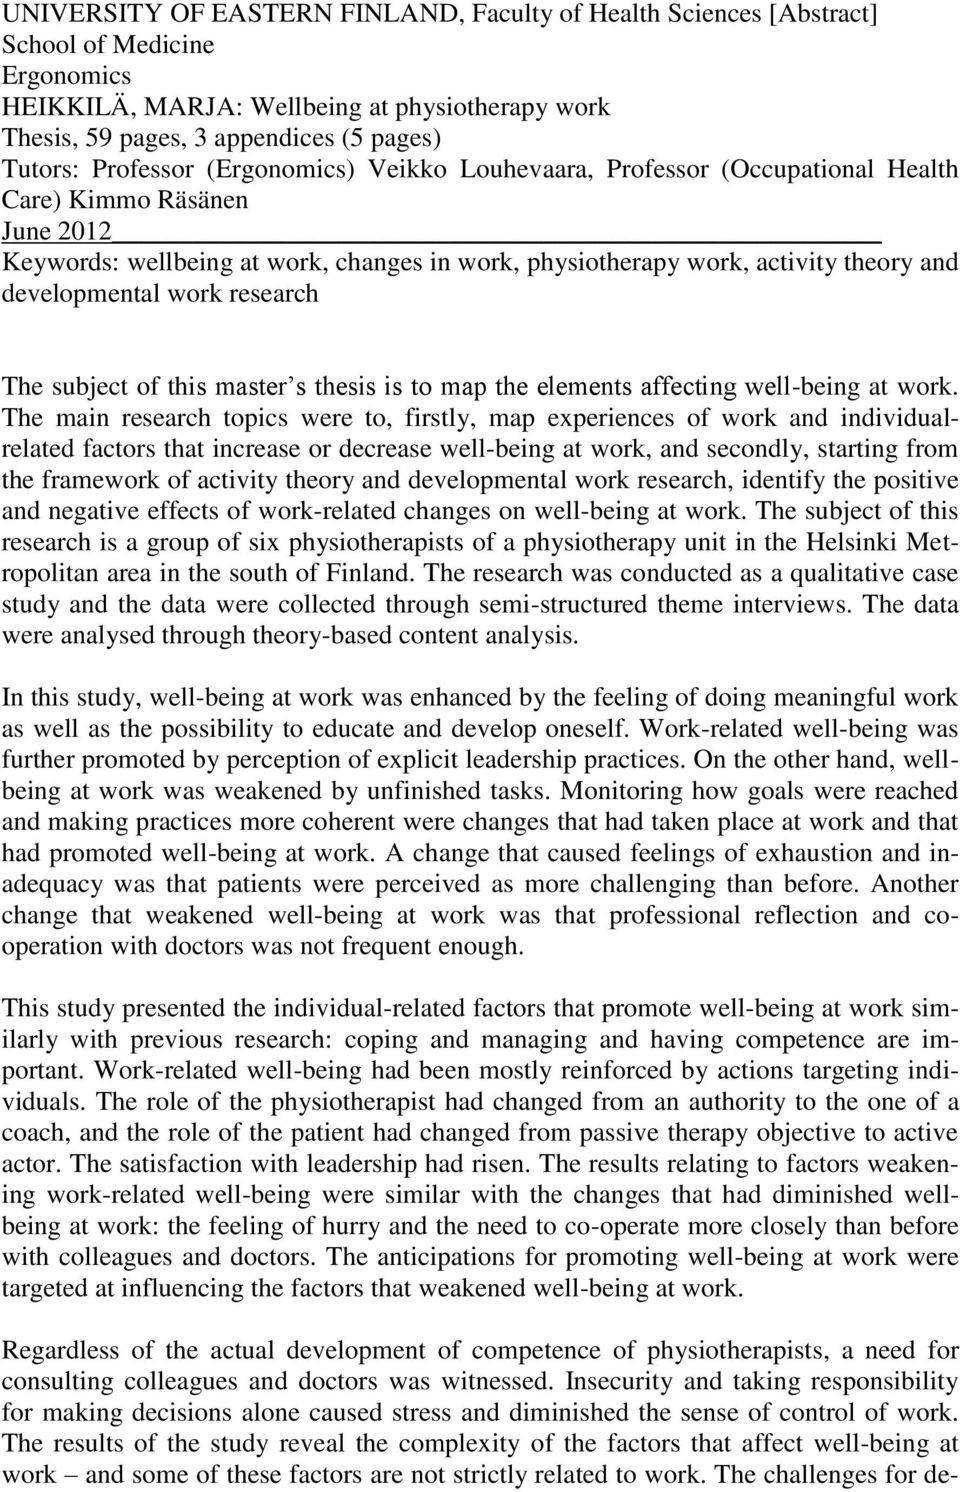 developmental work research The subject of this master s thesis is to map the elements affecting well-being at work.